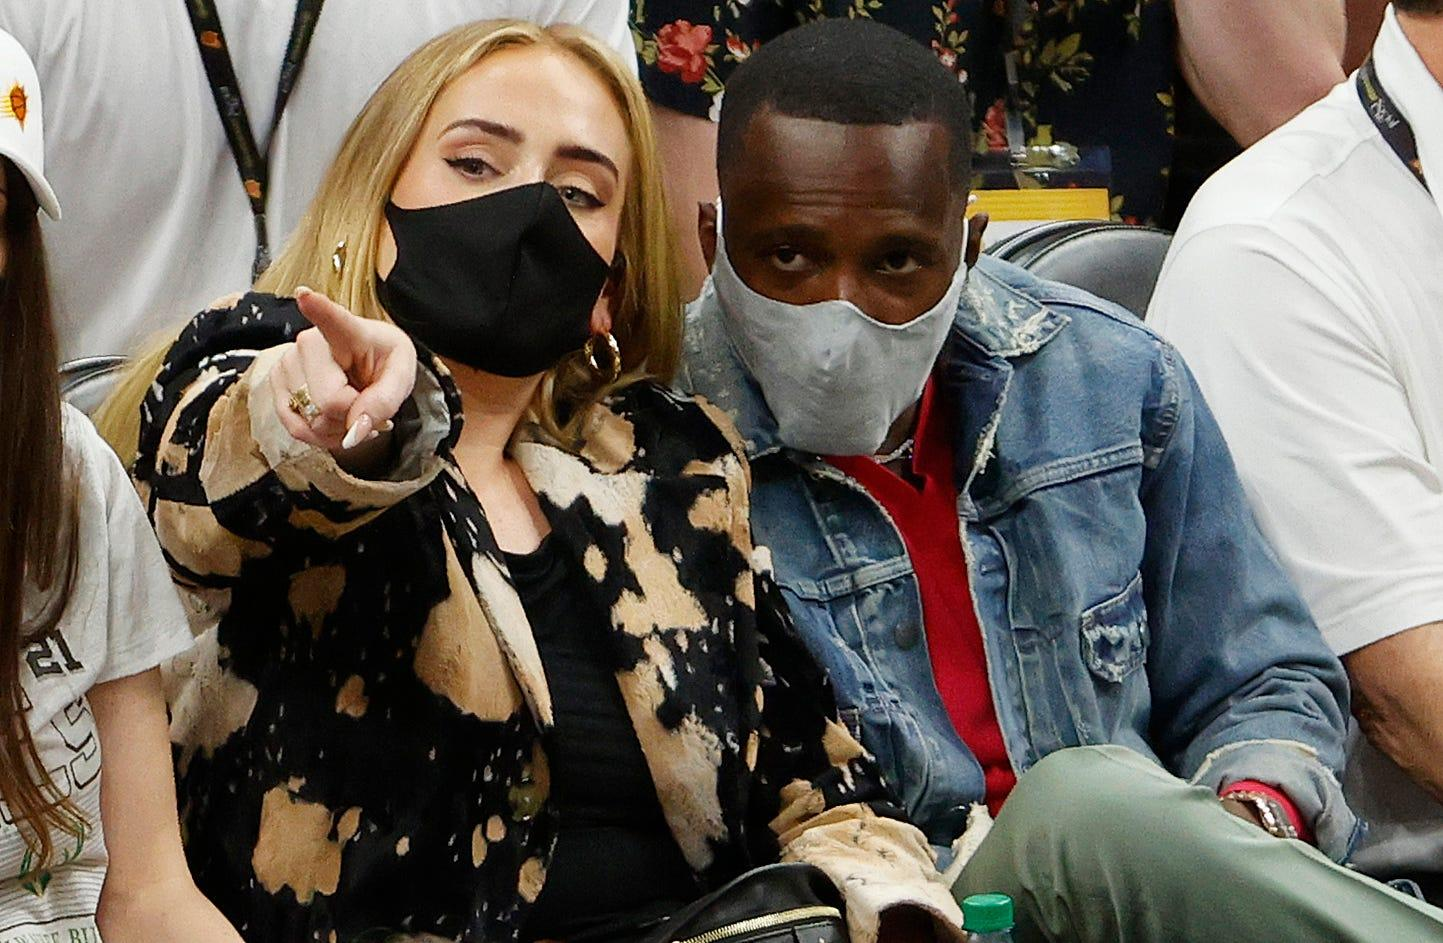 Report: LeBron James' agent Rich Paul and Adele are dating as the singer makes rare appearance at NBA Finals